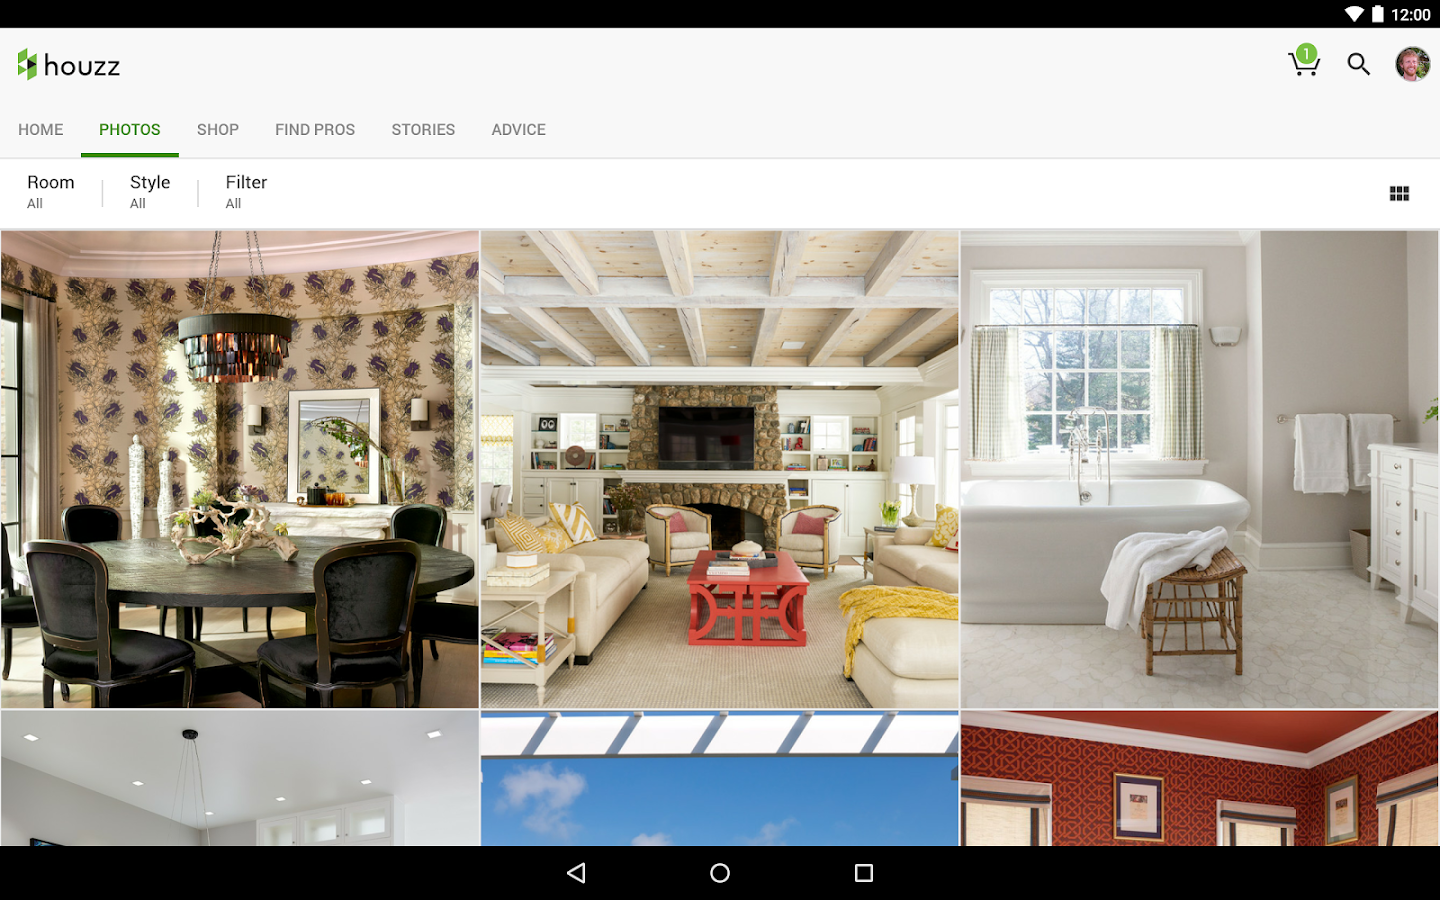 Houzz interior design ideas android apps on google play - Interior design pic ...